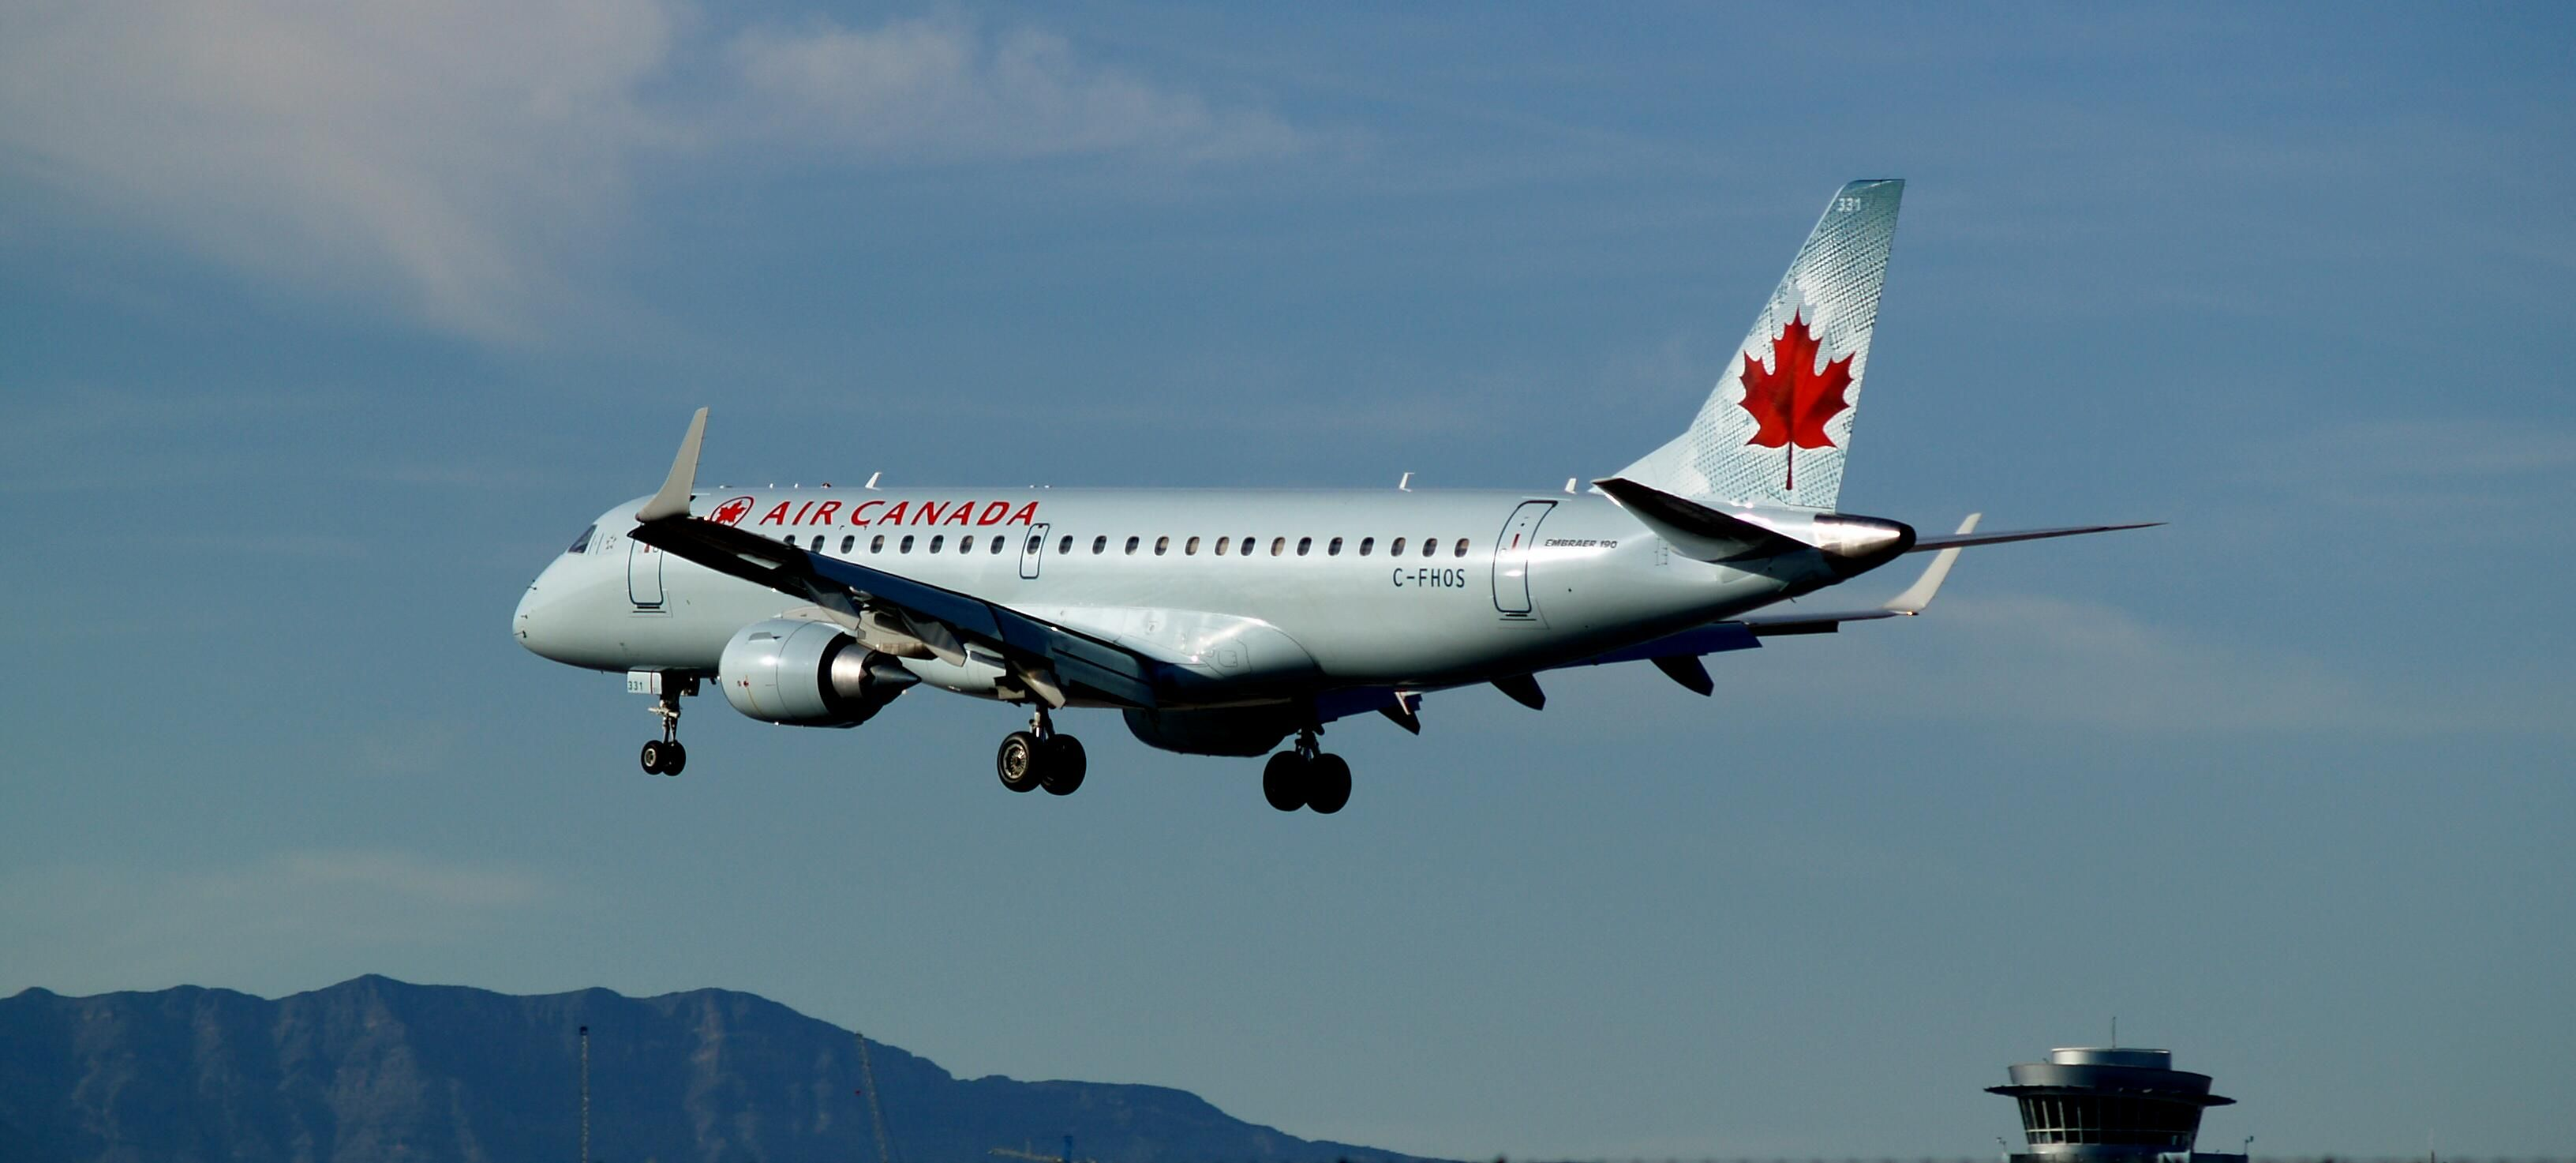 Pin by Jean Delisi on Air Canada Jet, Used aircraft